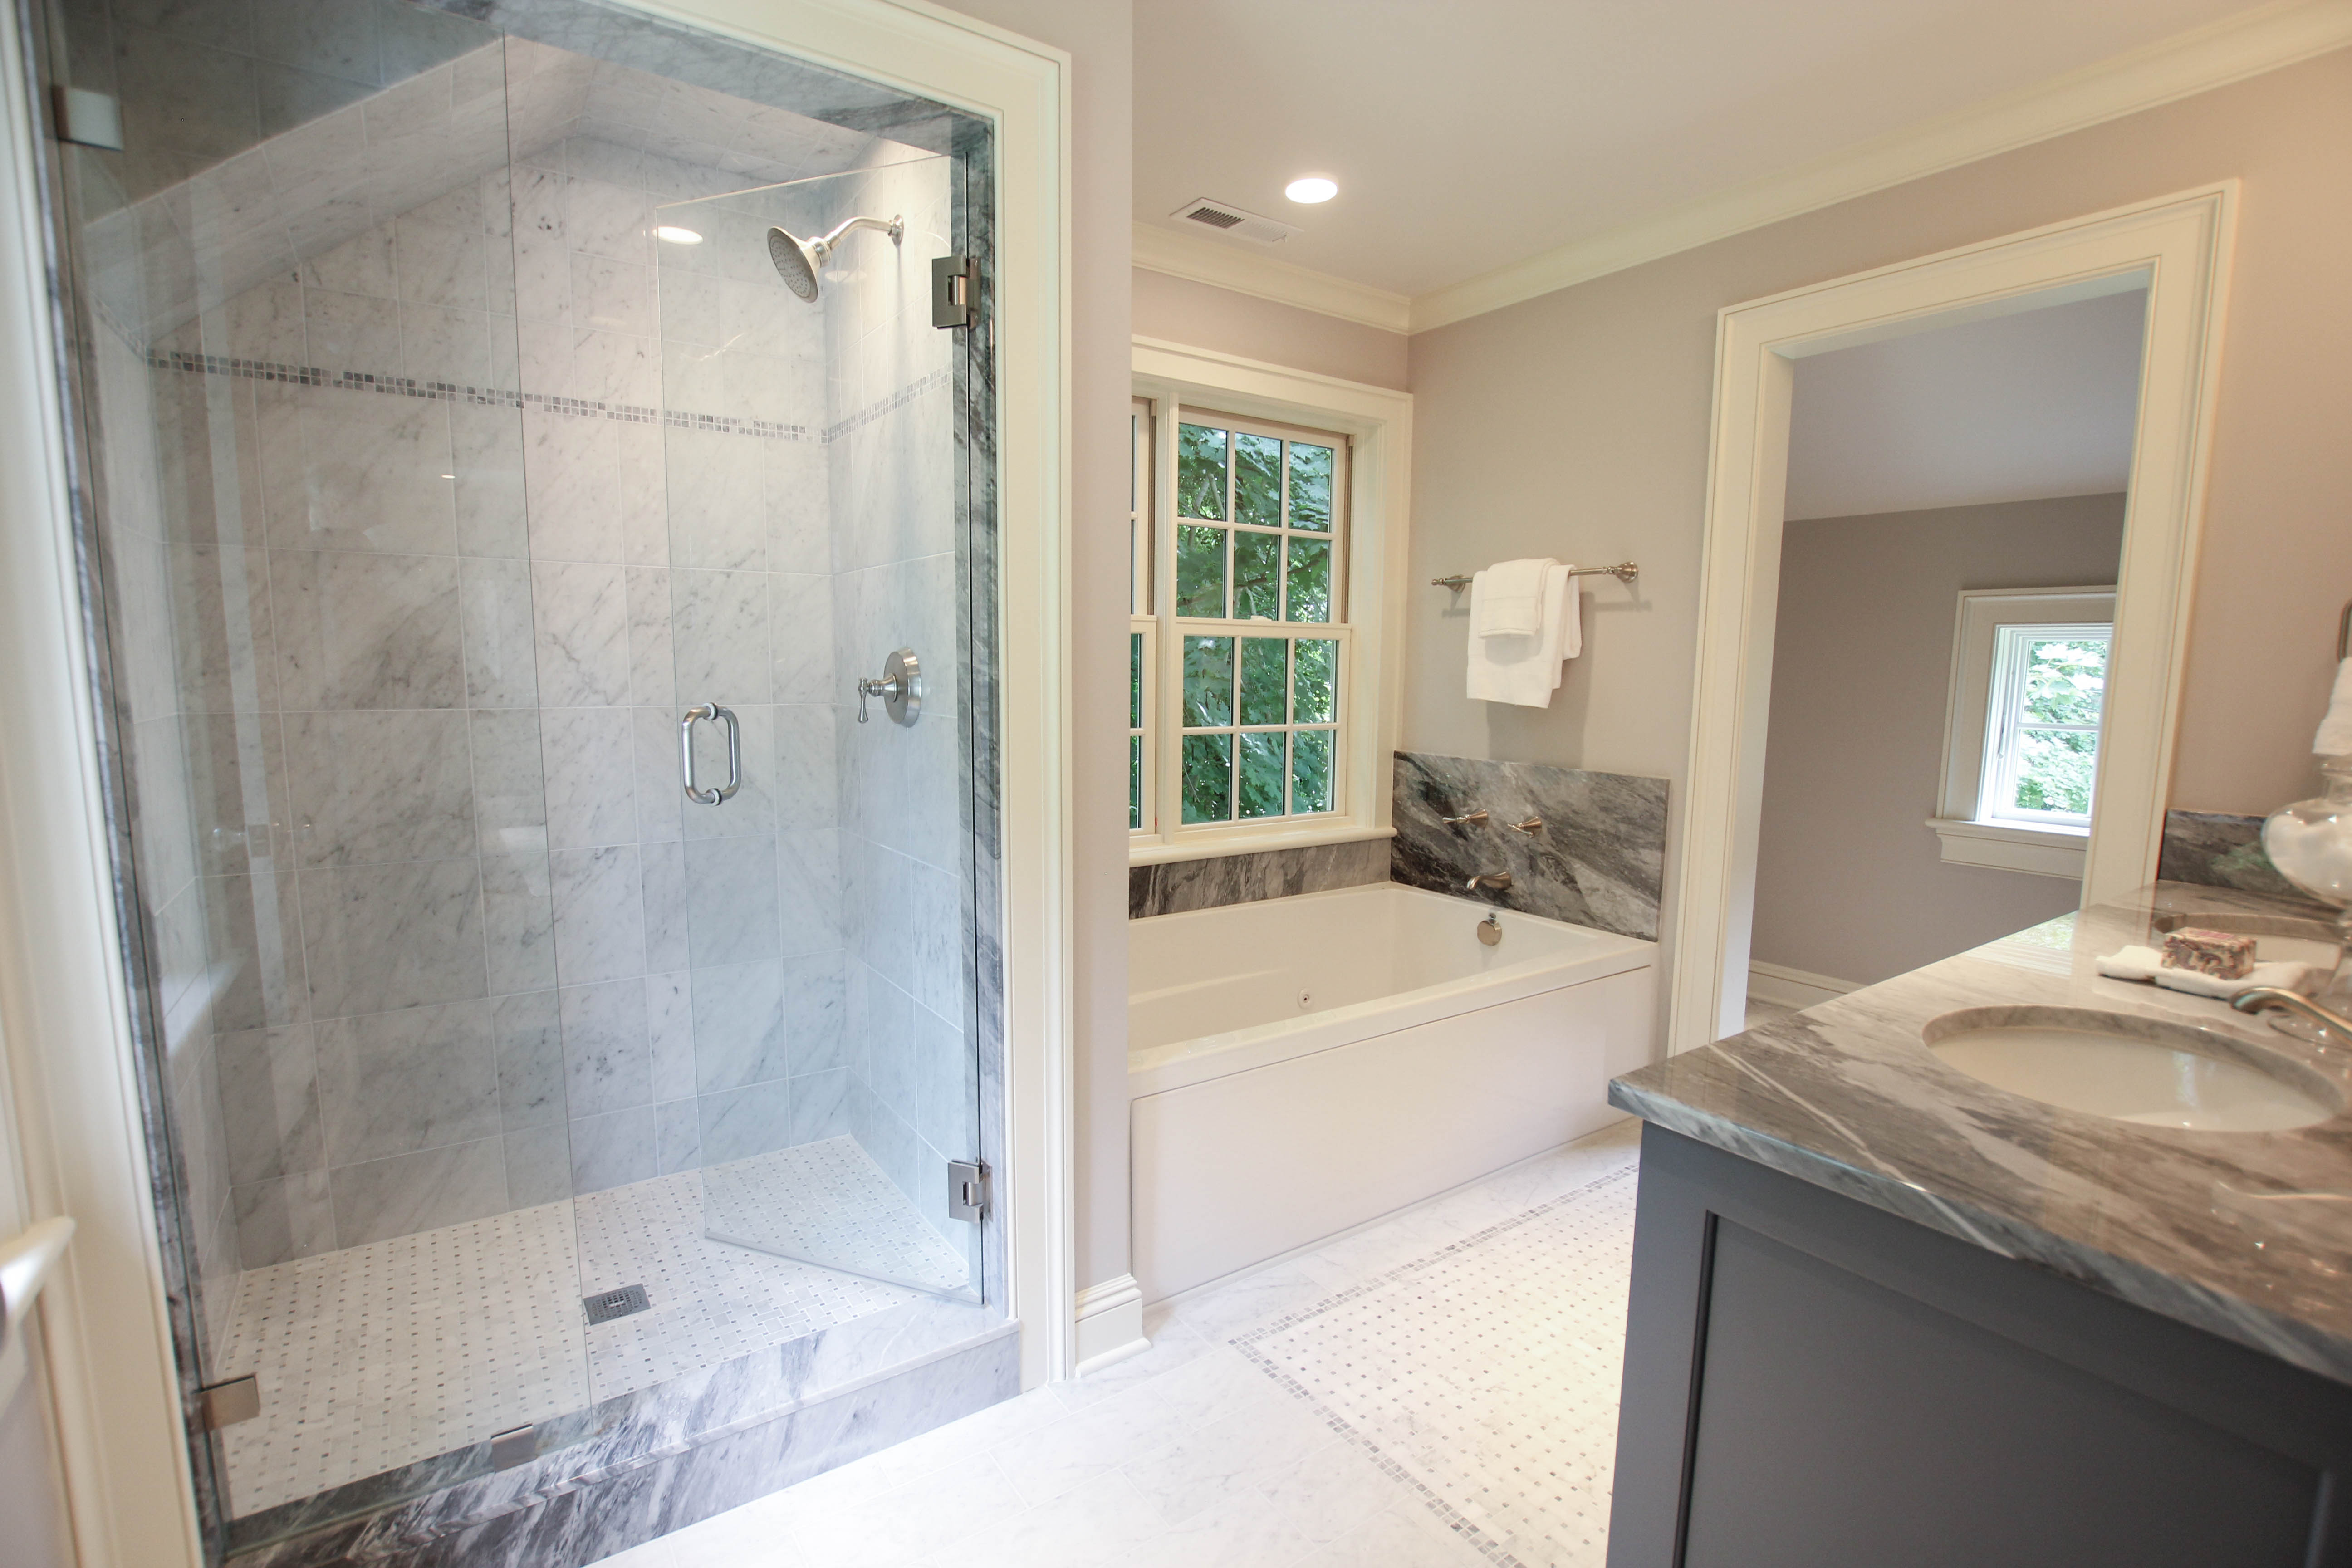 Stay Ahead of Your Dirty Bathroom